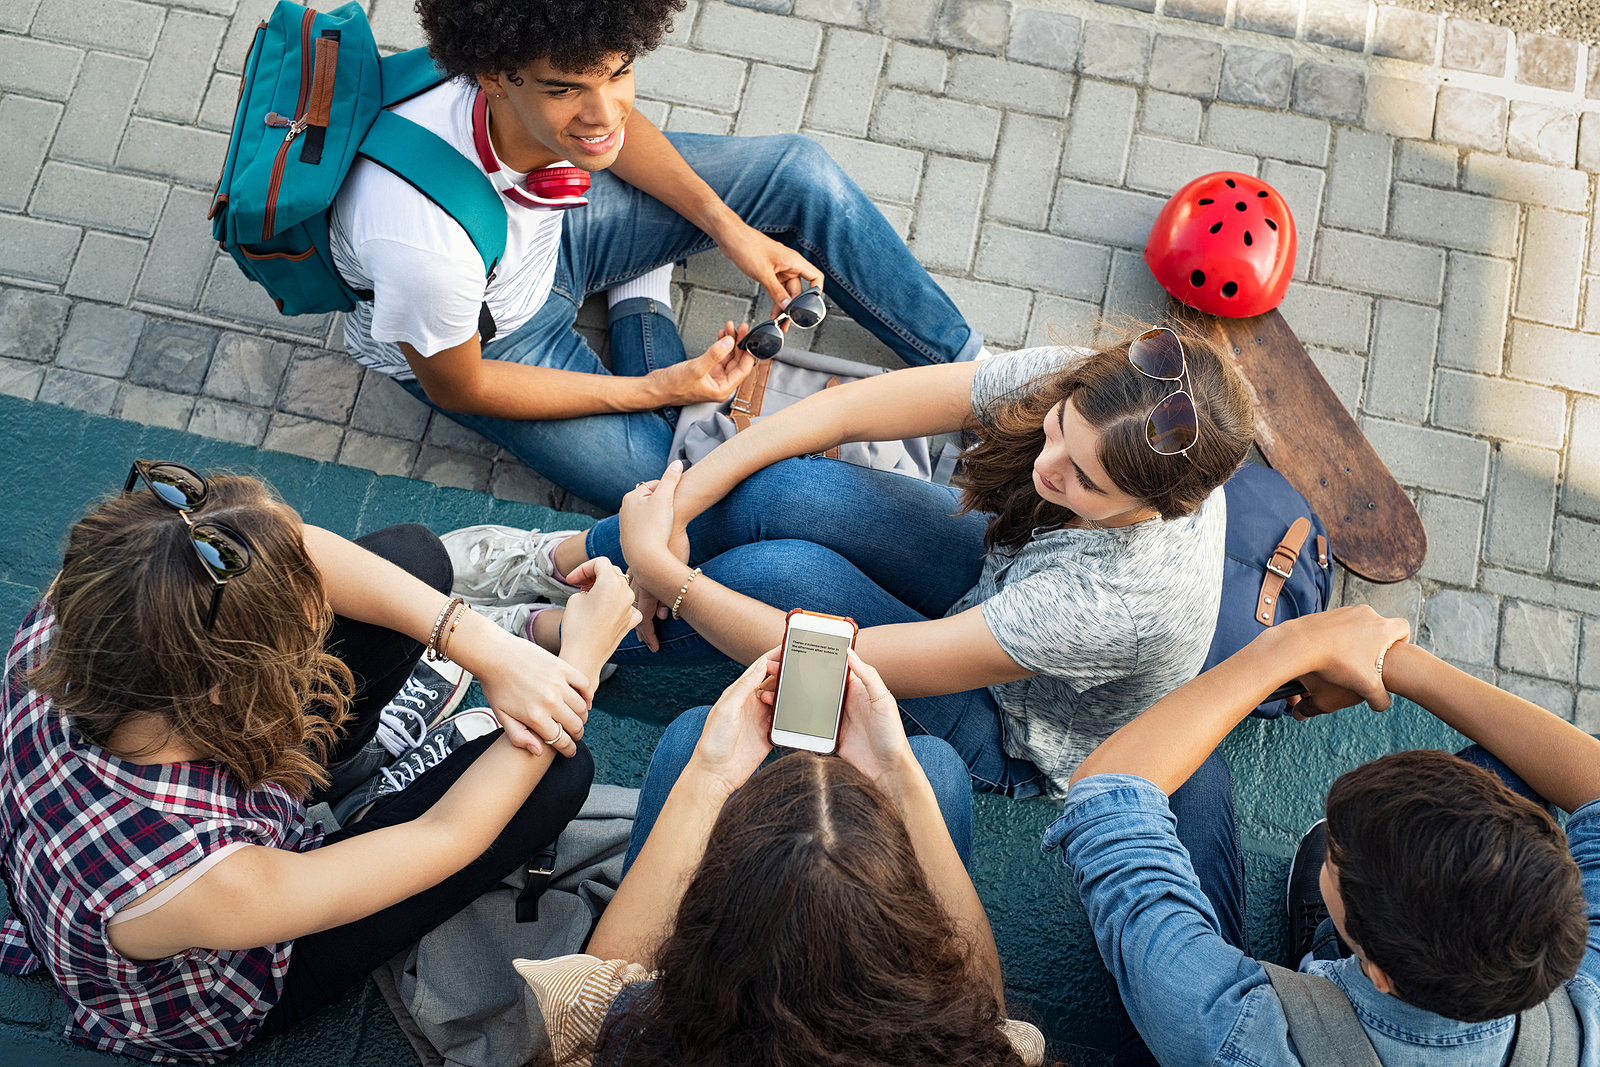 Image of a high angle view of guys and girls sitting and talking together. They are a Cheerful group of happy friends in conversation after class